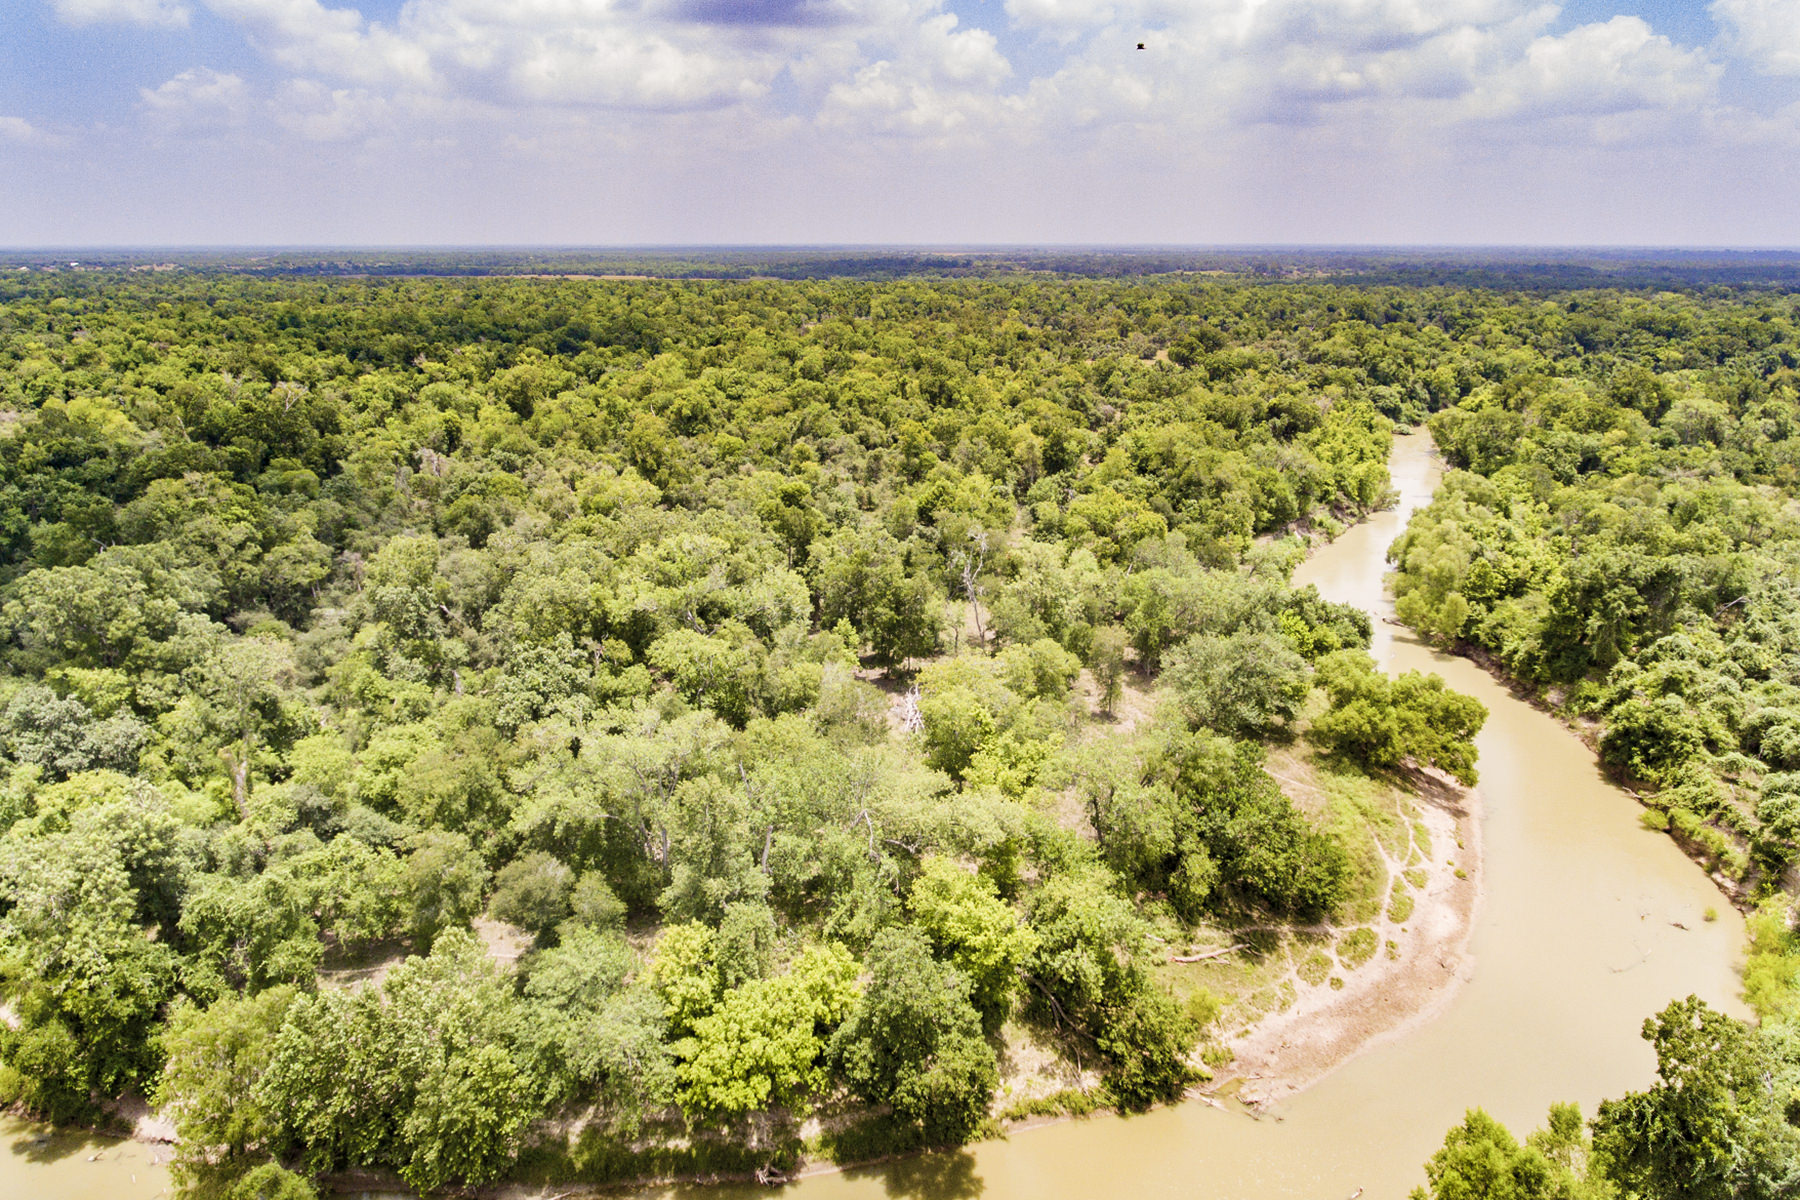 466.44+/- Acre M.T. River Ranch For Sale > M4 Ranch Real ...